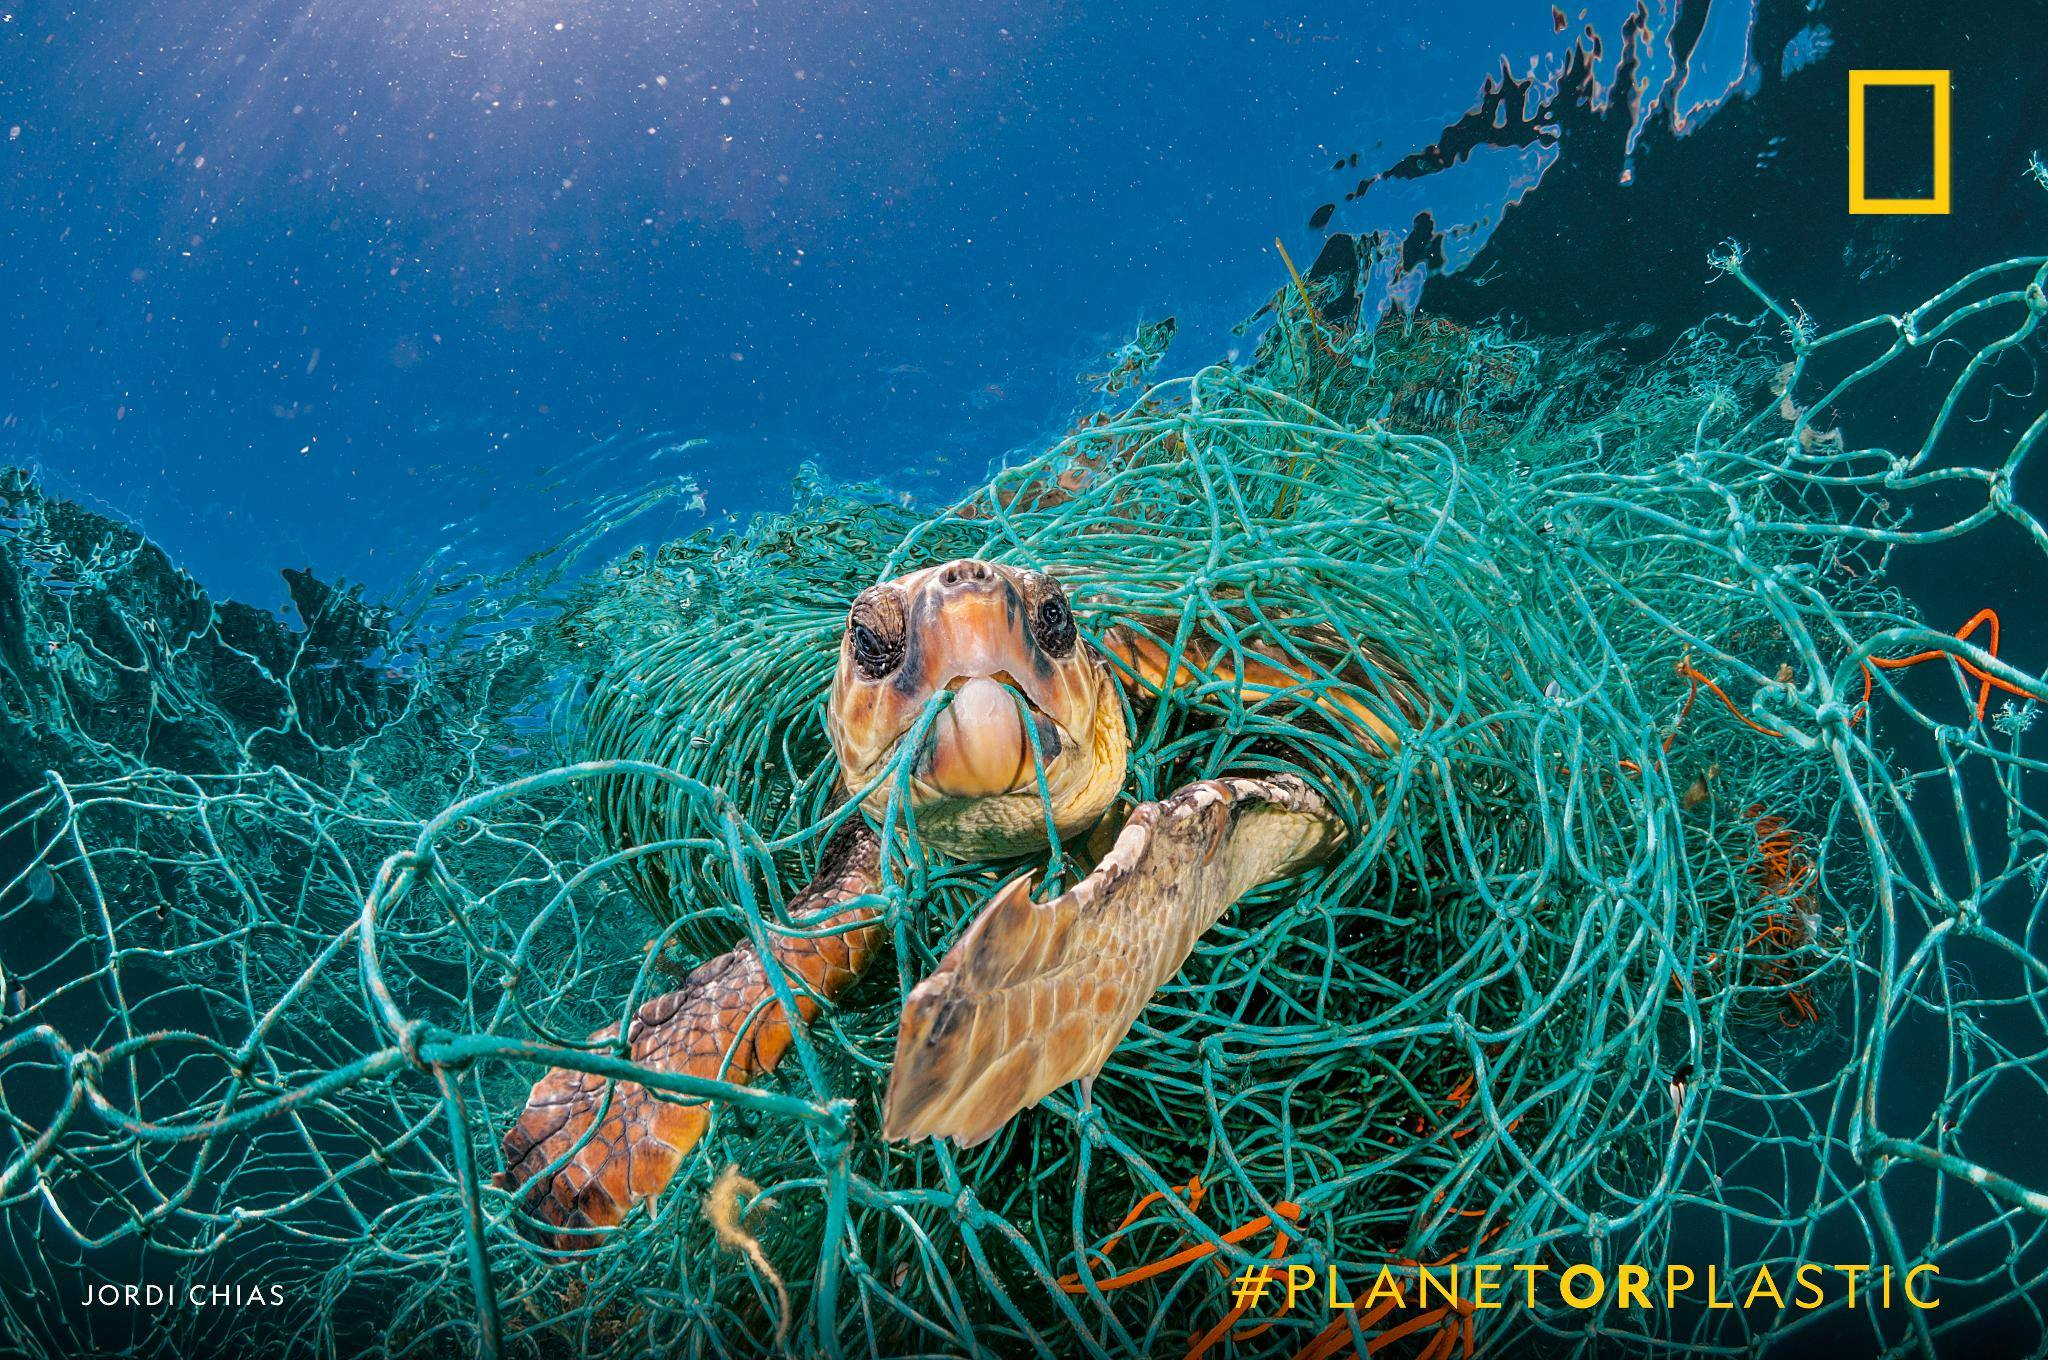 Some 700 species of marine animals have been reported—so far—to have eaten or become entangled in plastic. How are you reducing your single-use plastics in 2019? https://on.natgeo.com/2RRYMGZ